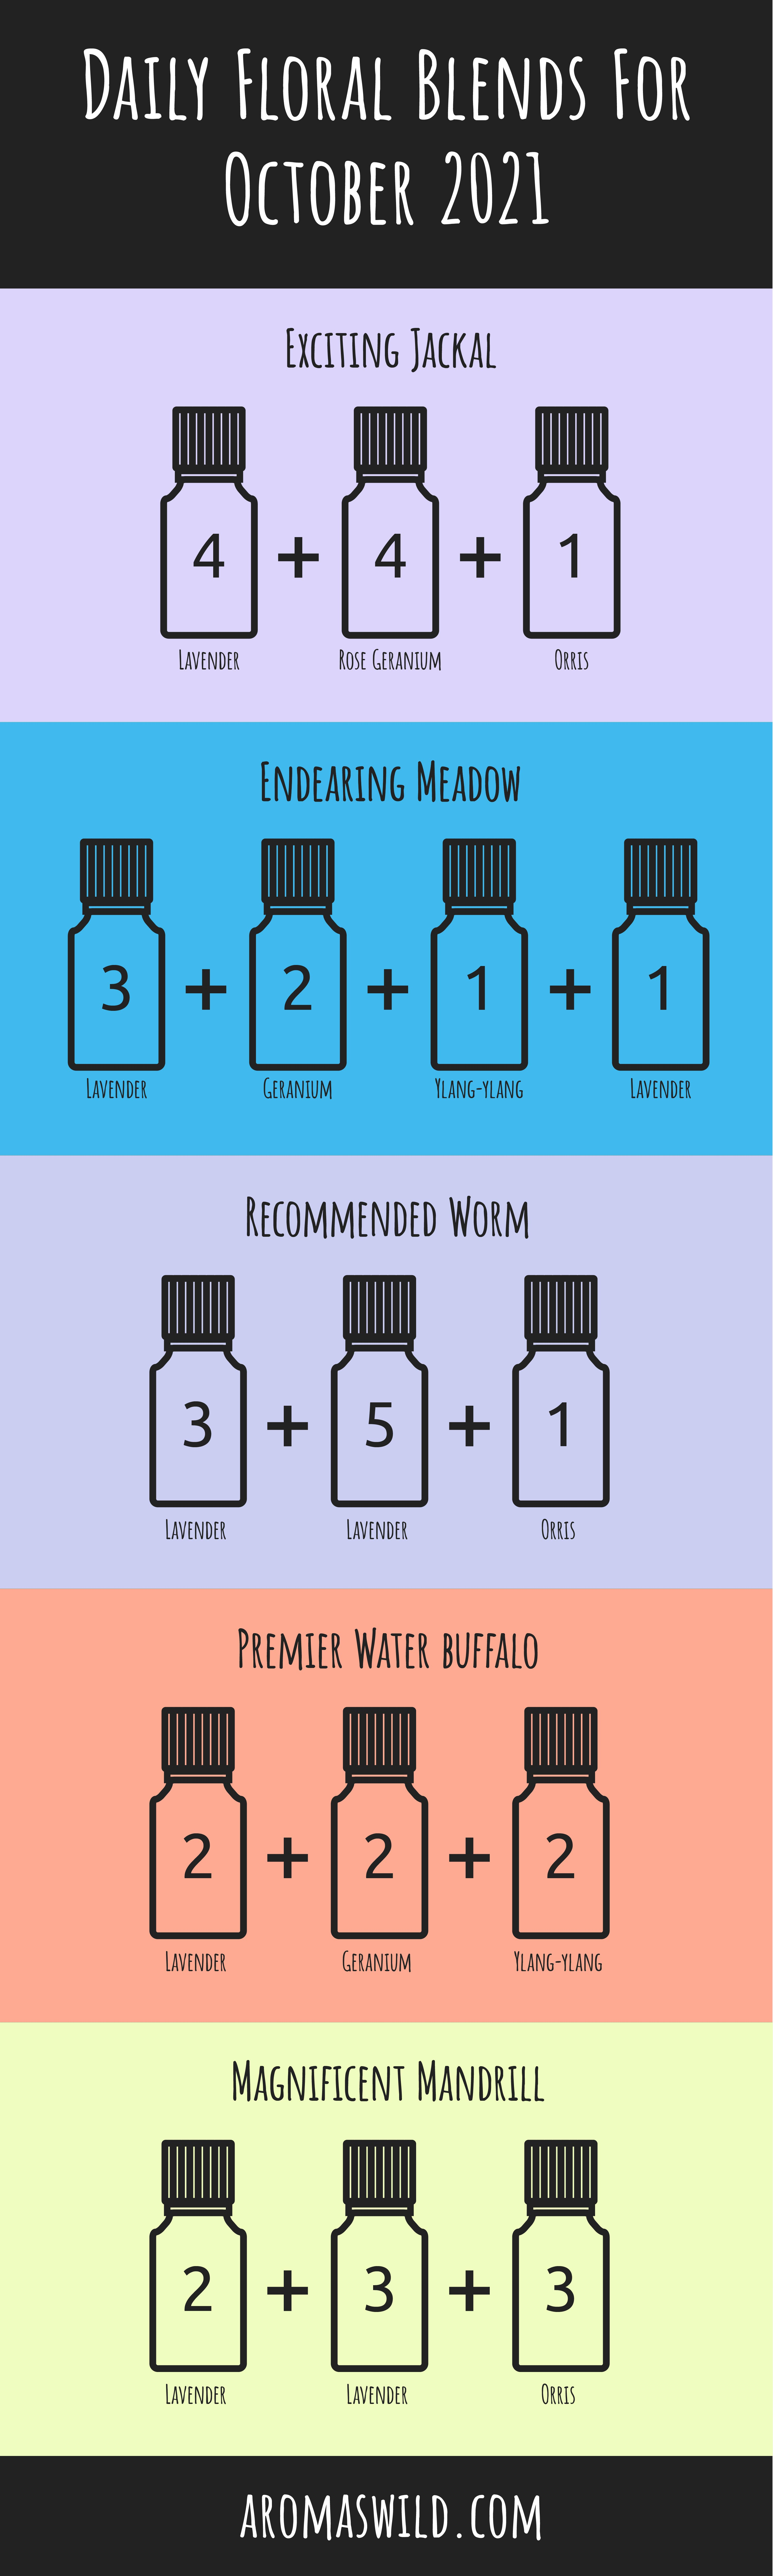 Best Essential Oil Recipes Diffuser – Daily Floral Blends For 23 October 2021